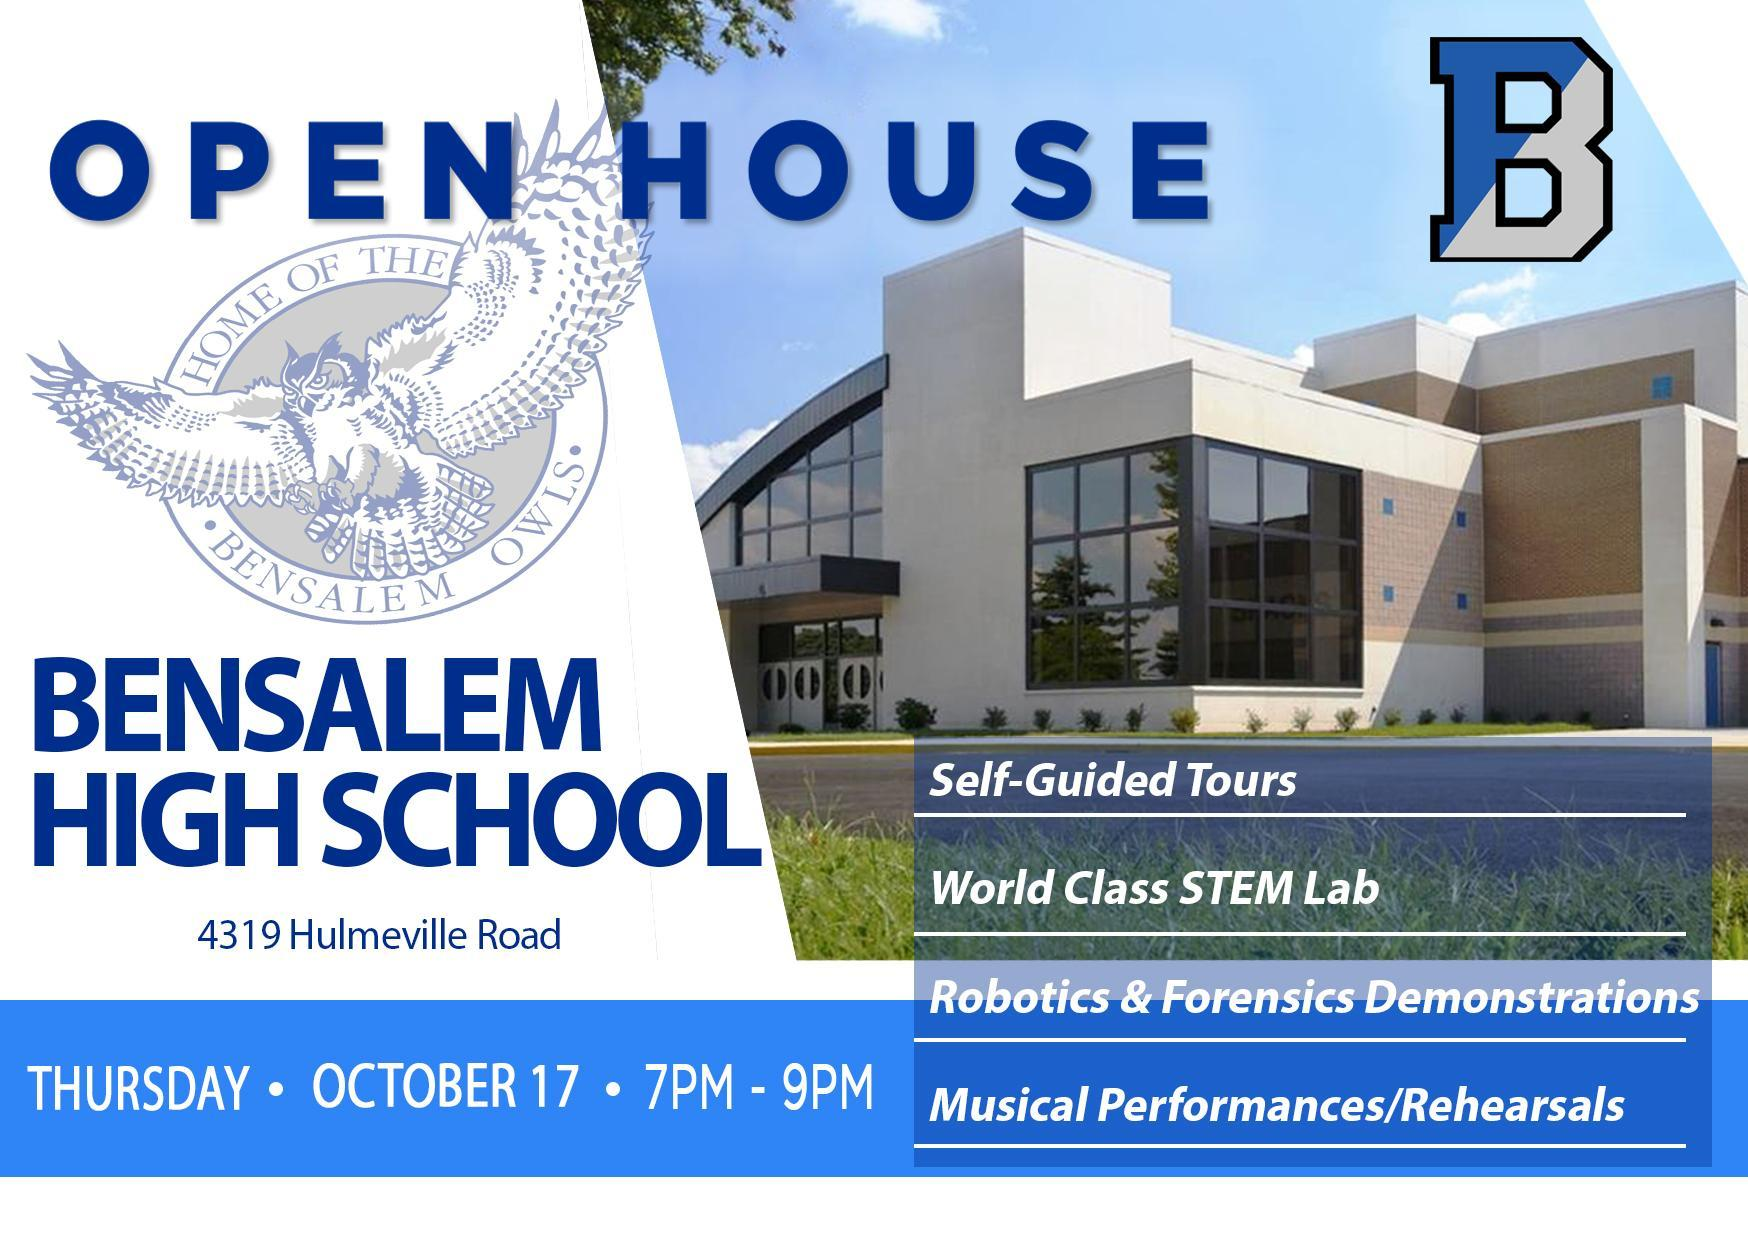 Open House post card with a photo of the owl logo in blue and gray and the front of the school.